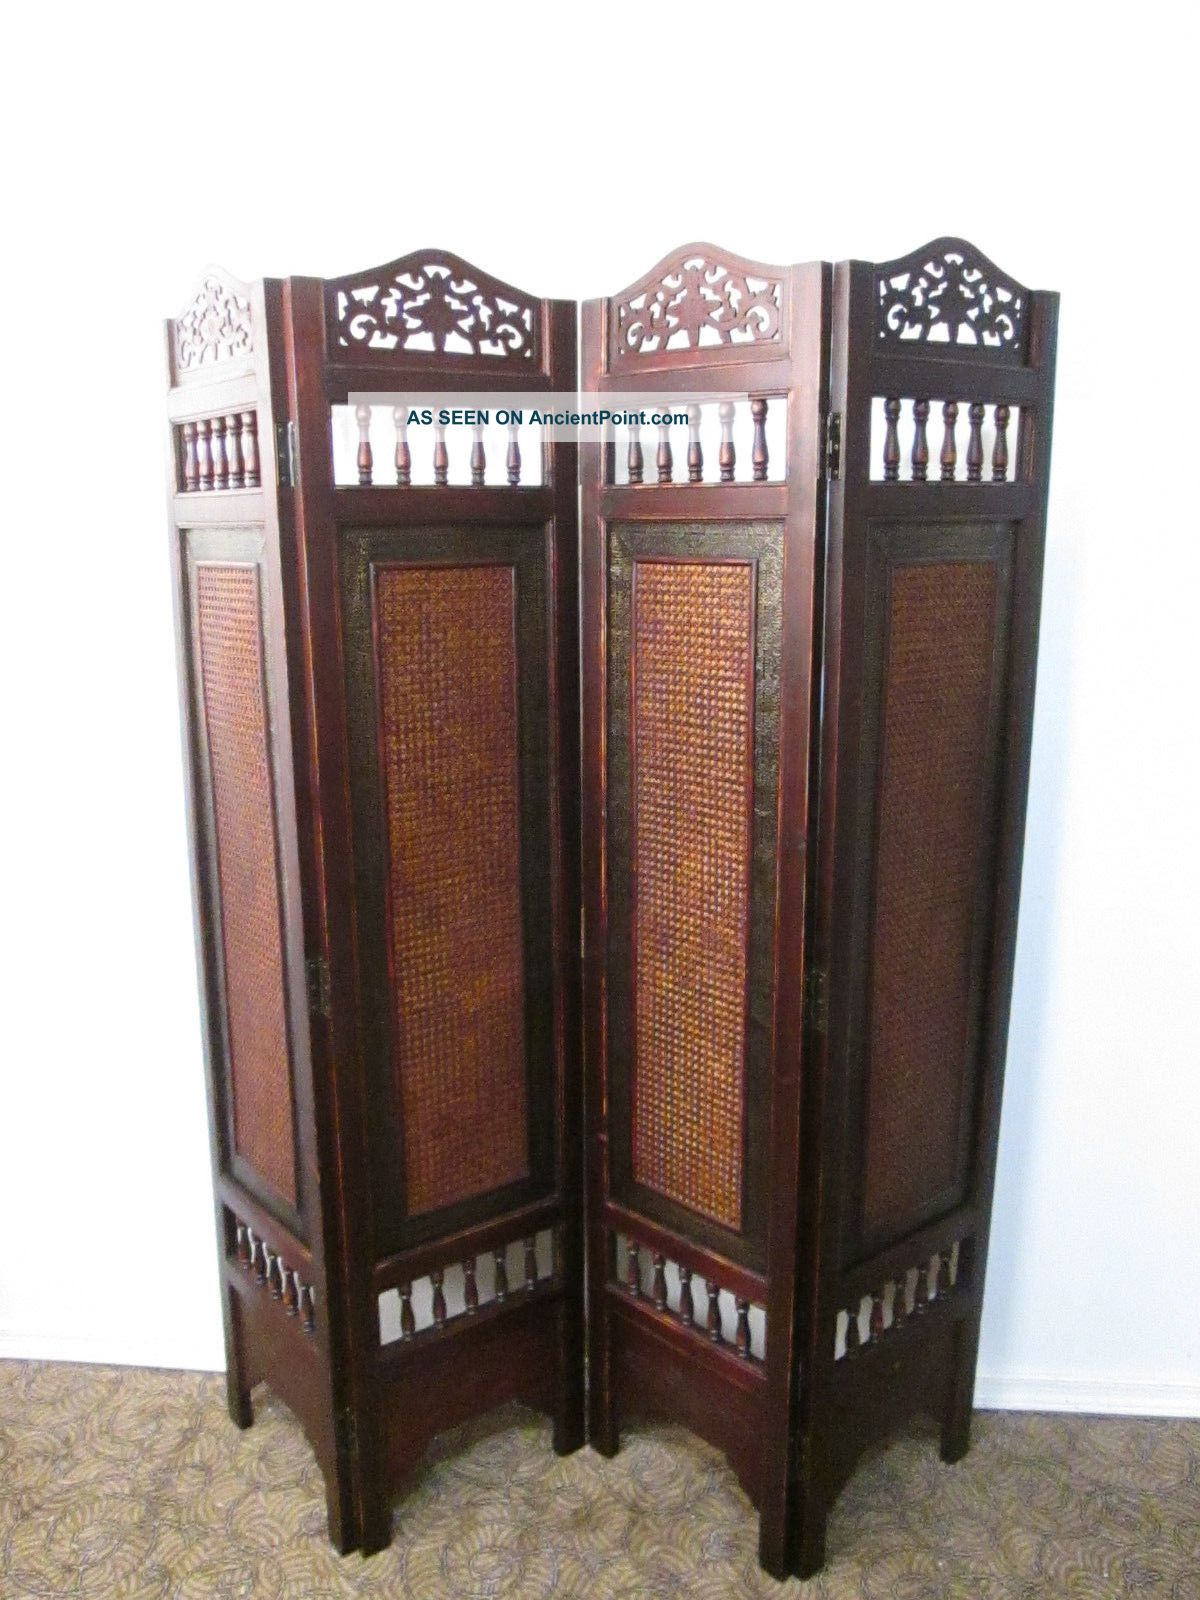 57924 Dressing Screen Room Divider 4 Section Other Antique Furniture photo